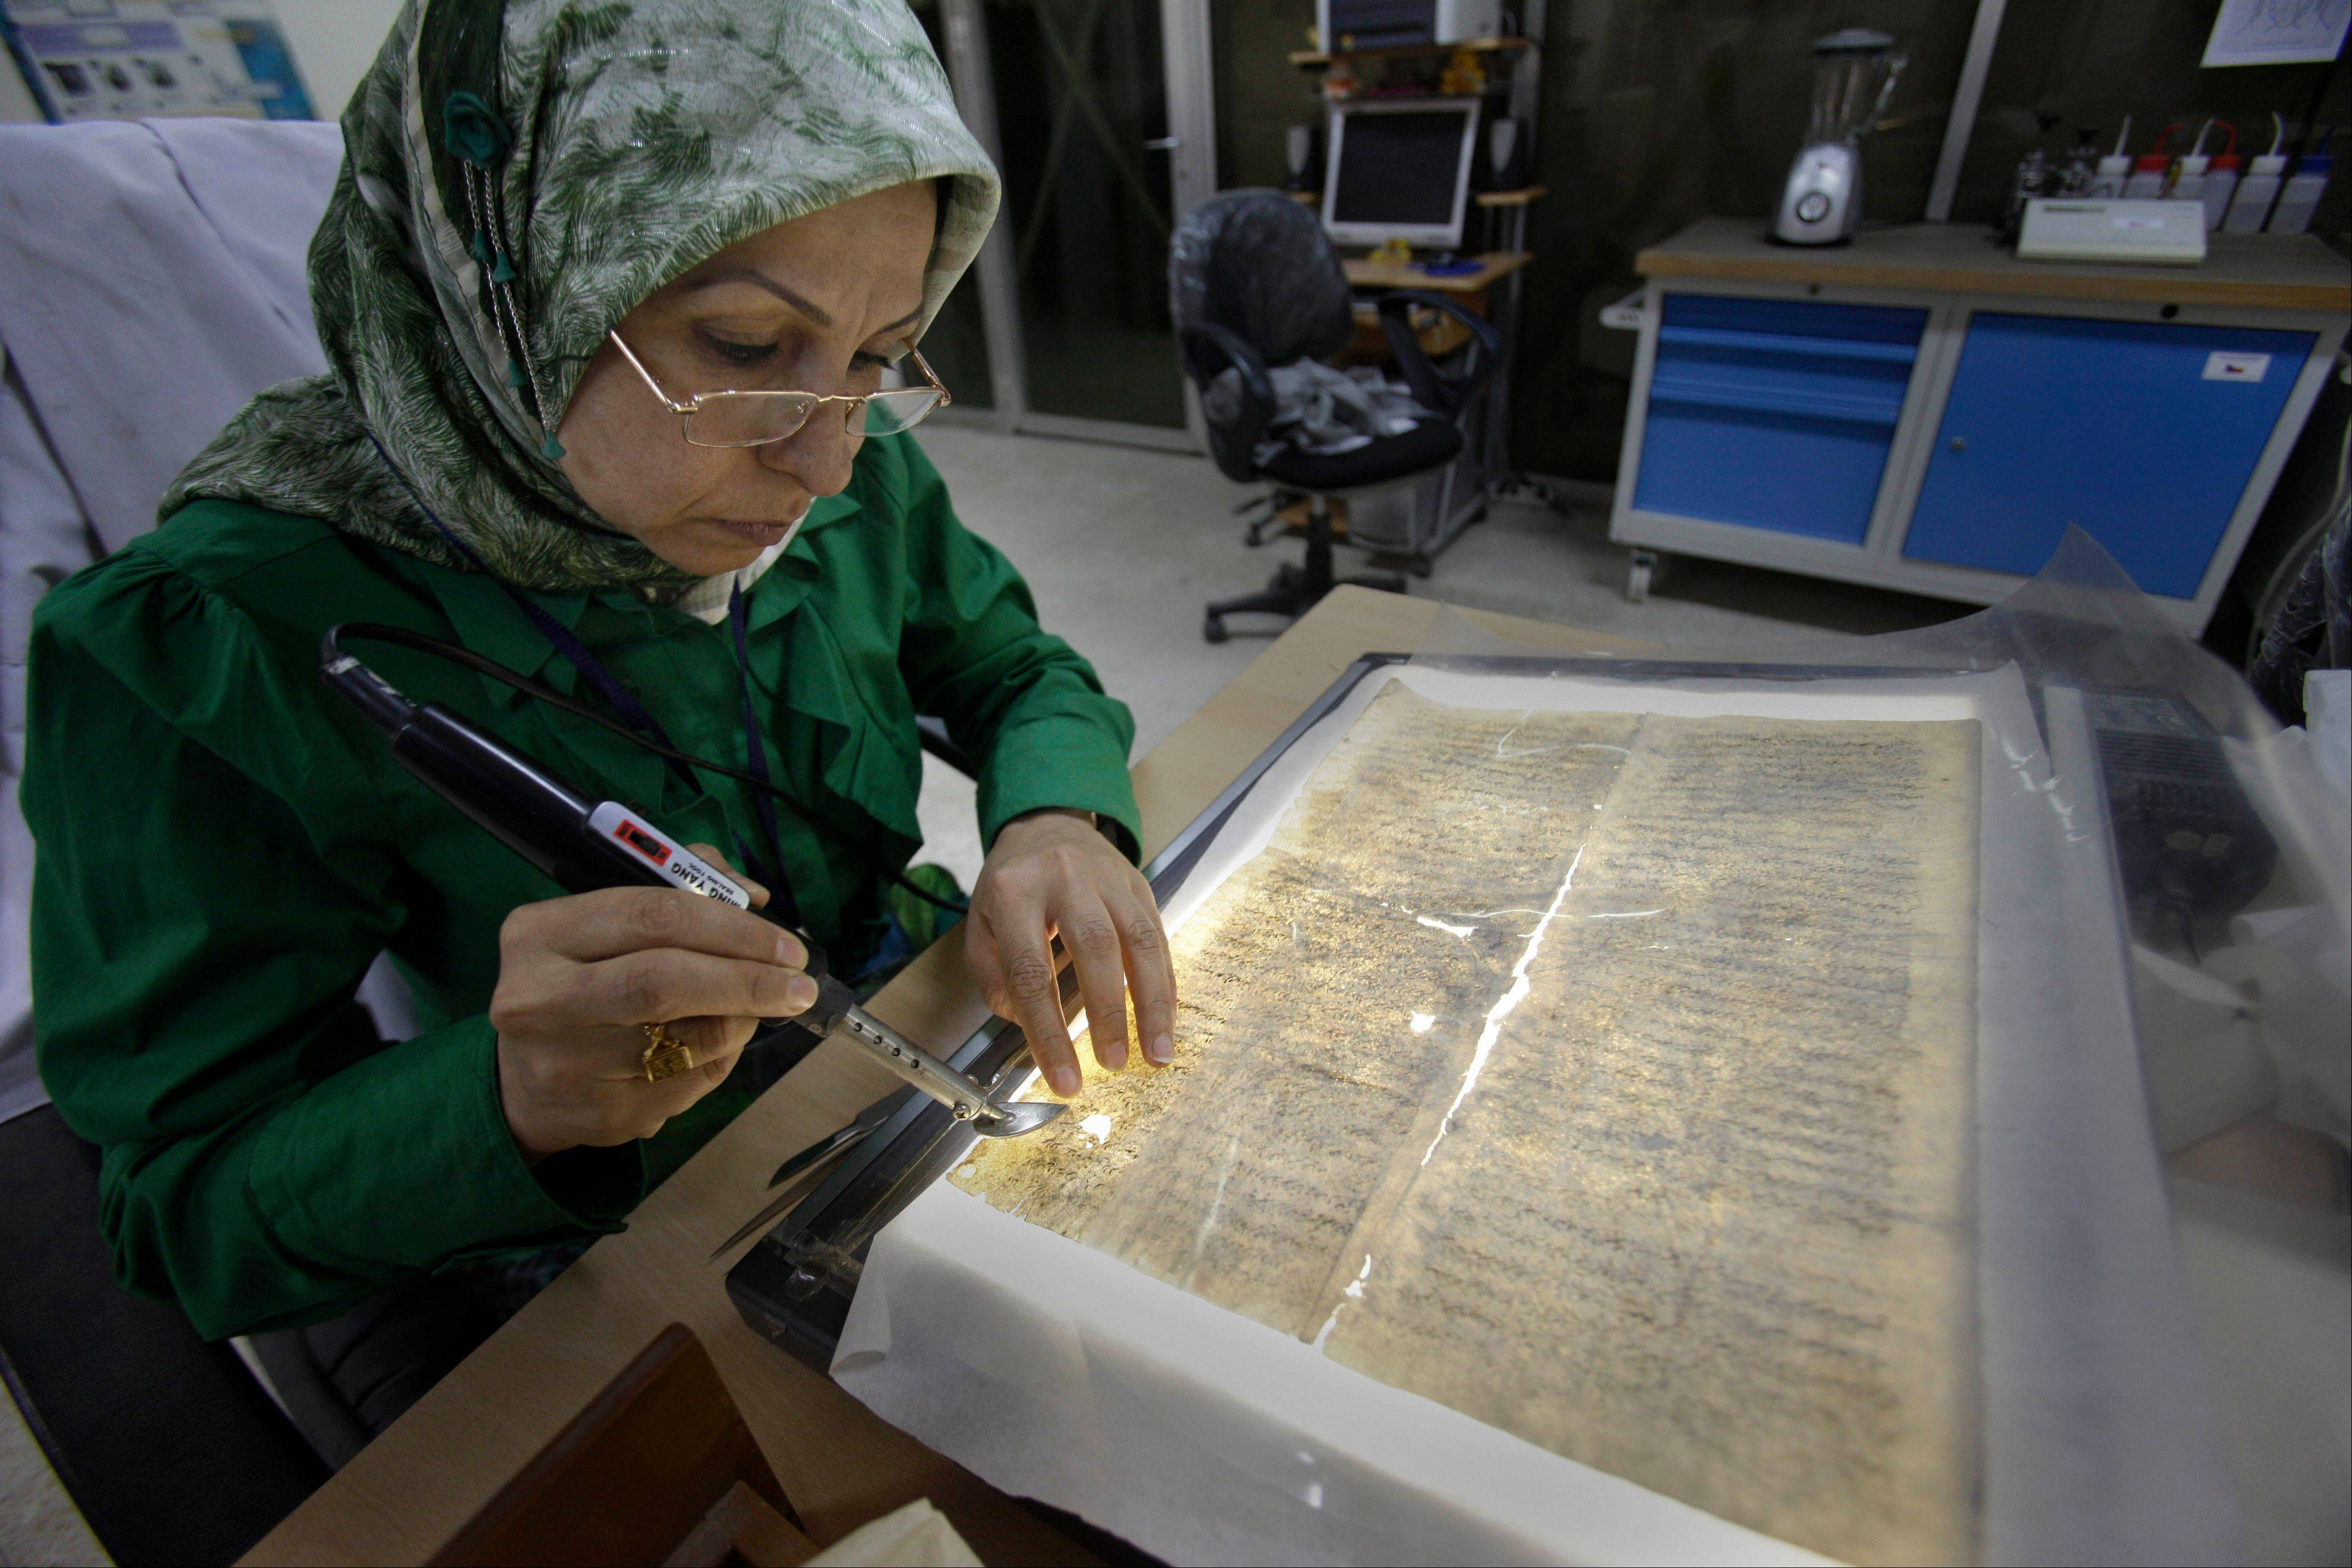 Alaa Jassim, a member of the library restoration staff, works on a damaged document at the Iraqi National Library in Baghdad.